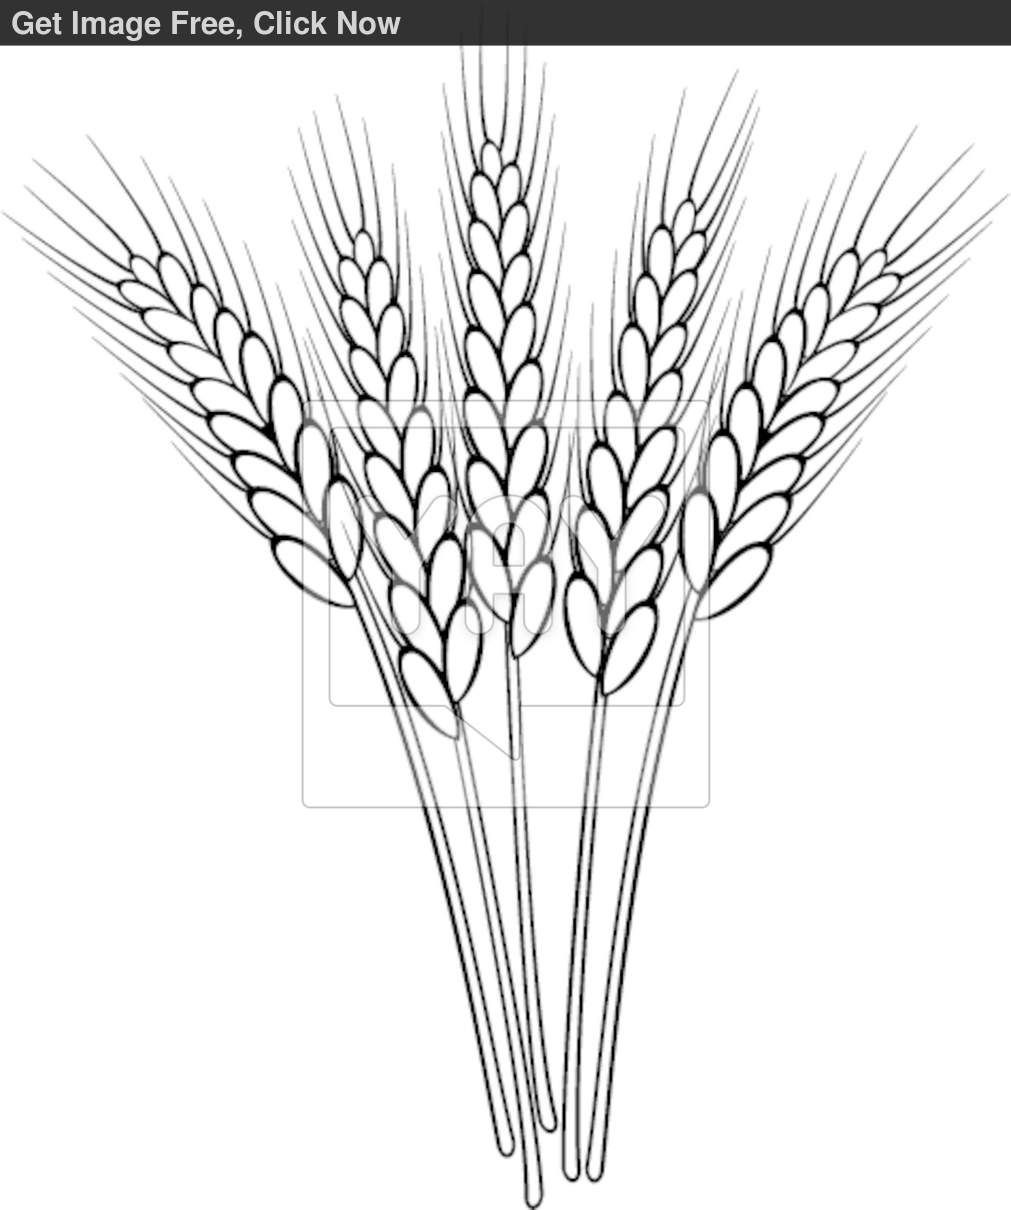 Wheat Stalk Clip Art Black And White Wheat Drawing Outline Drawings